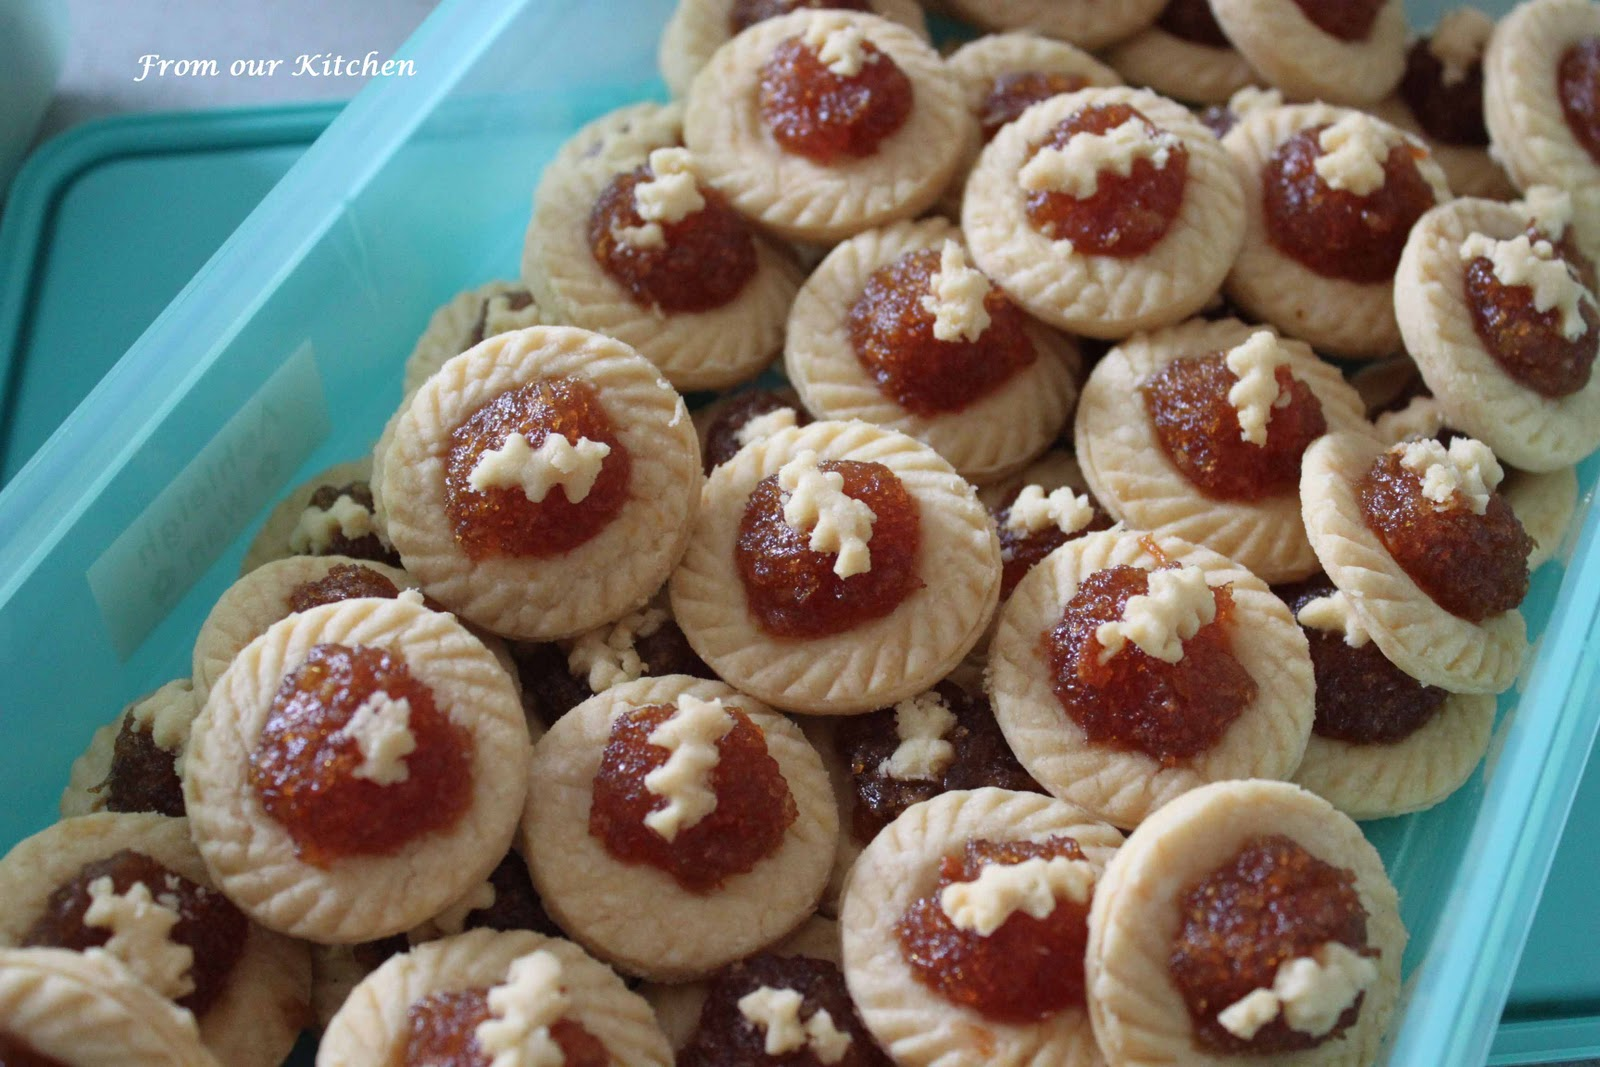 From Our Home: Malaysian Monday #3 - Pineapple Jam Tarts